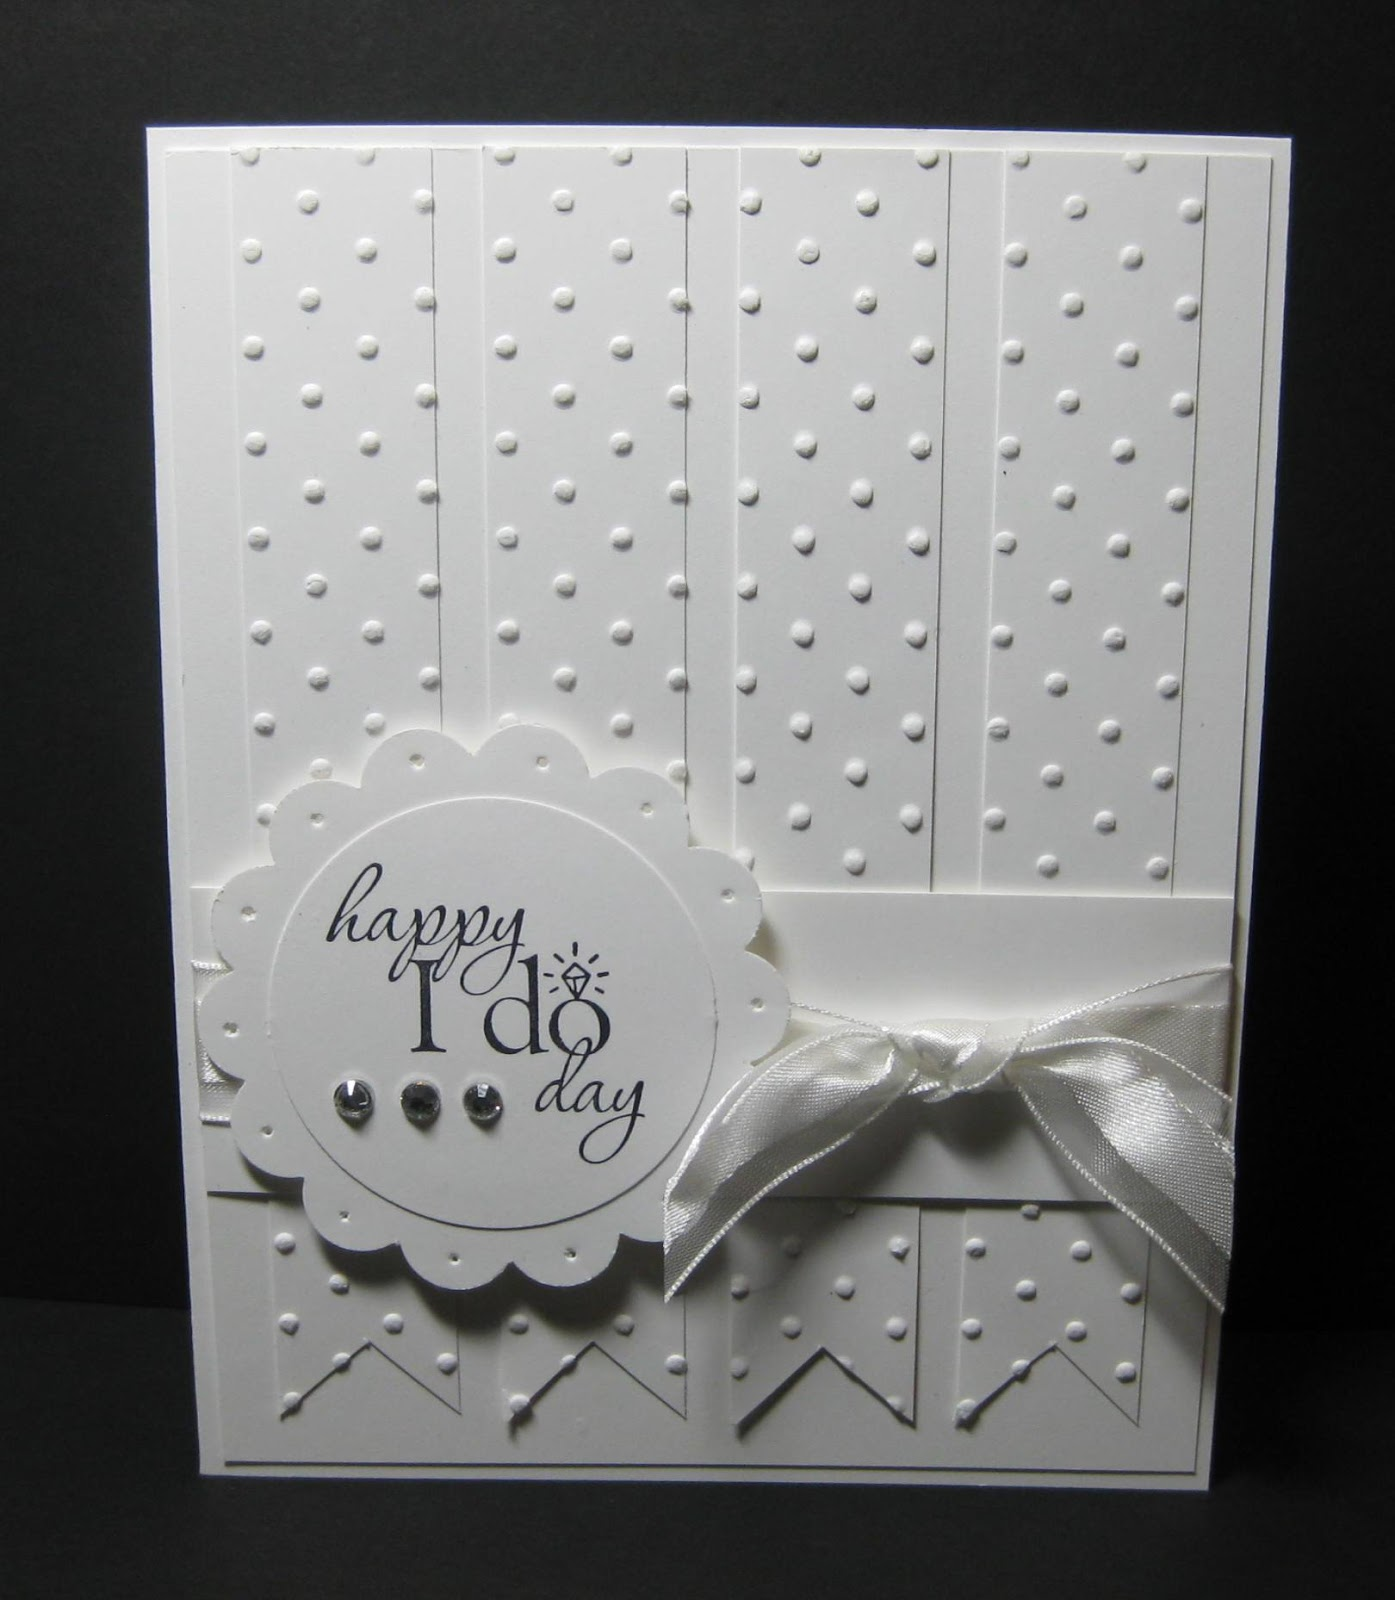 Wedding Ideas On Pinterest: Momma B Stampin': A Wedding Card From Pinterest